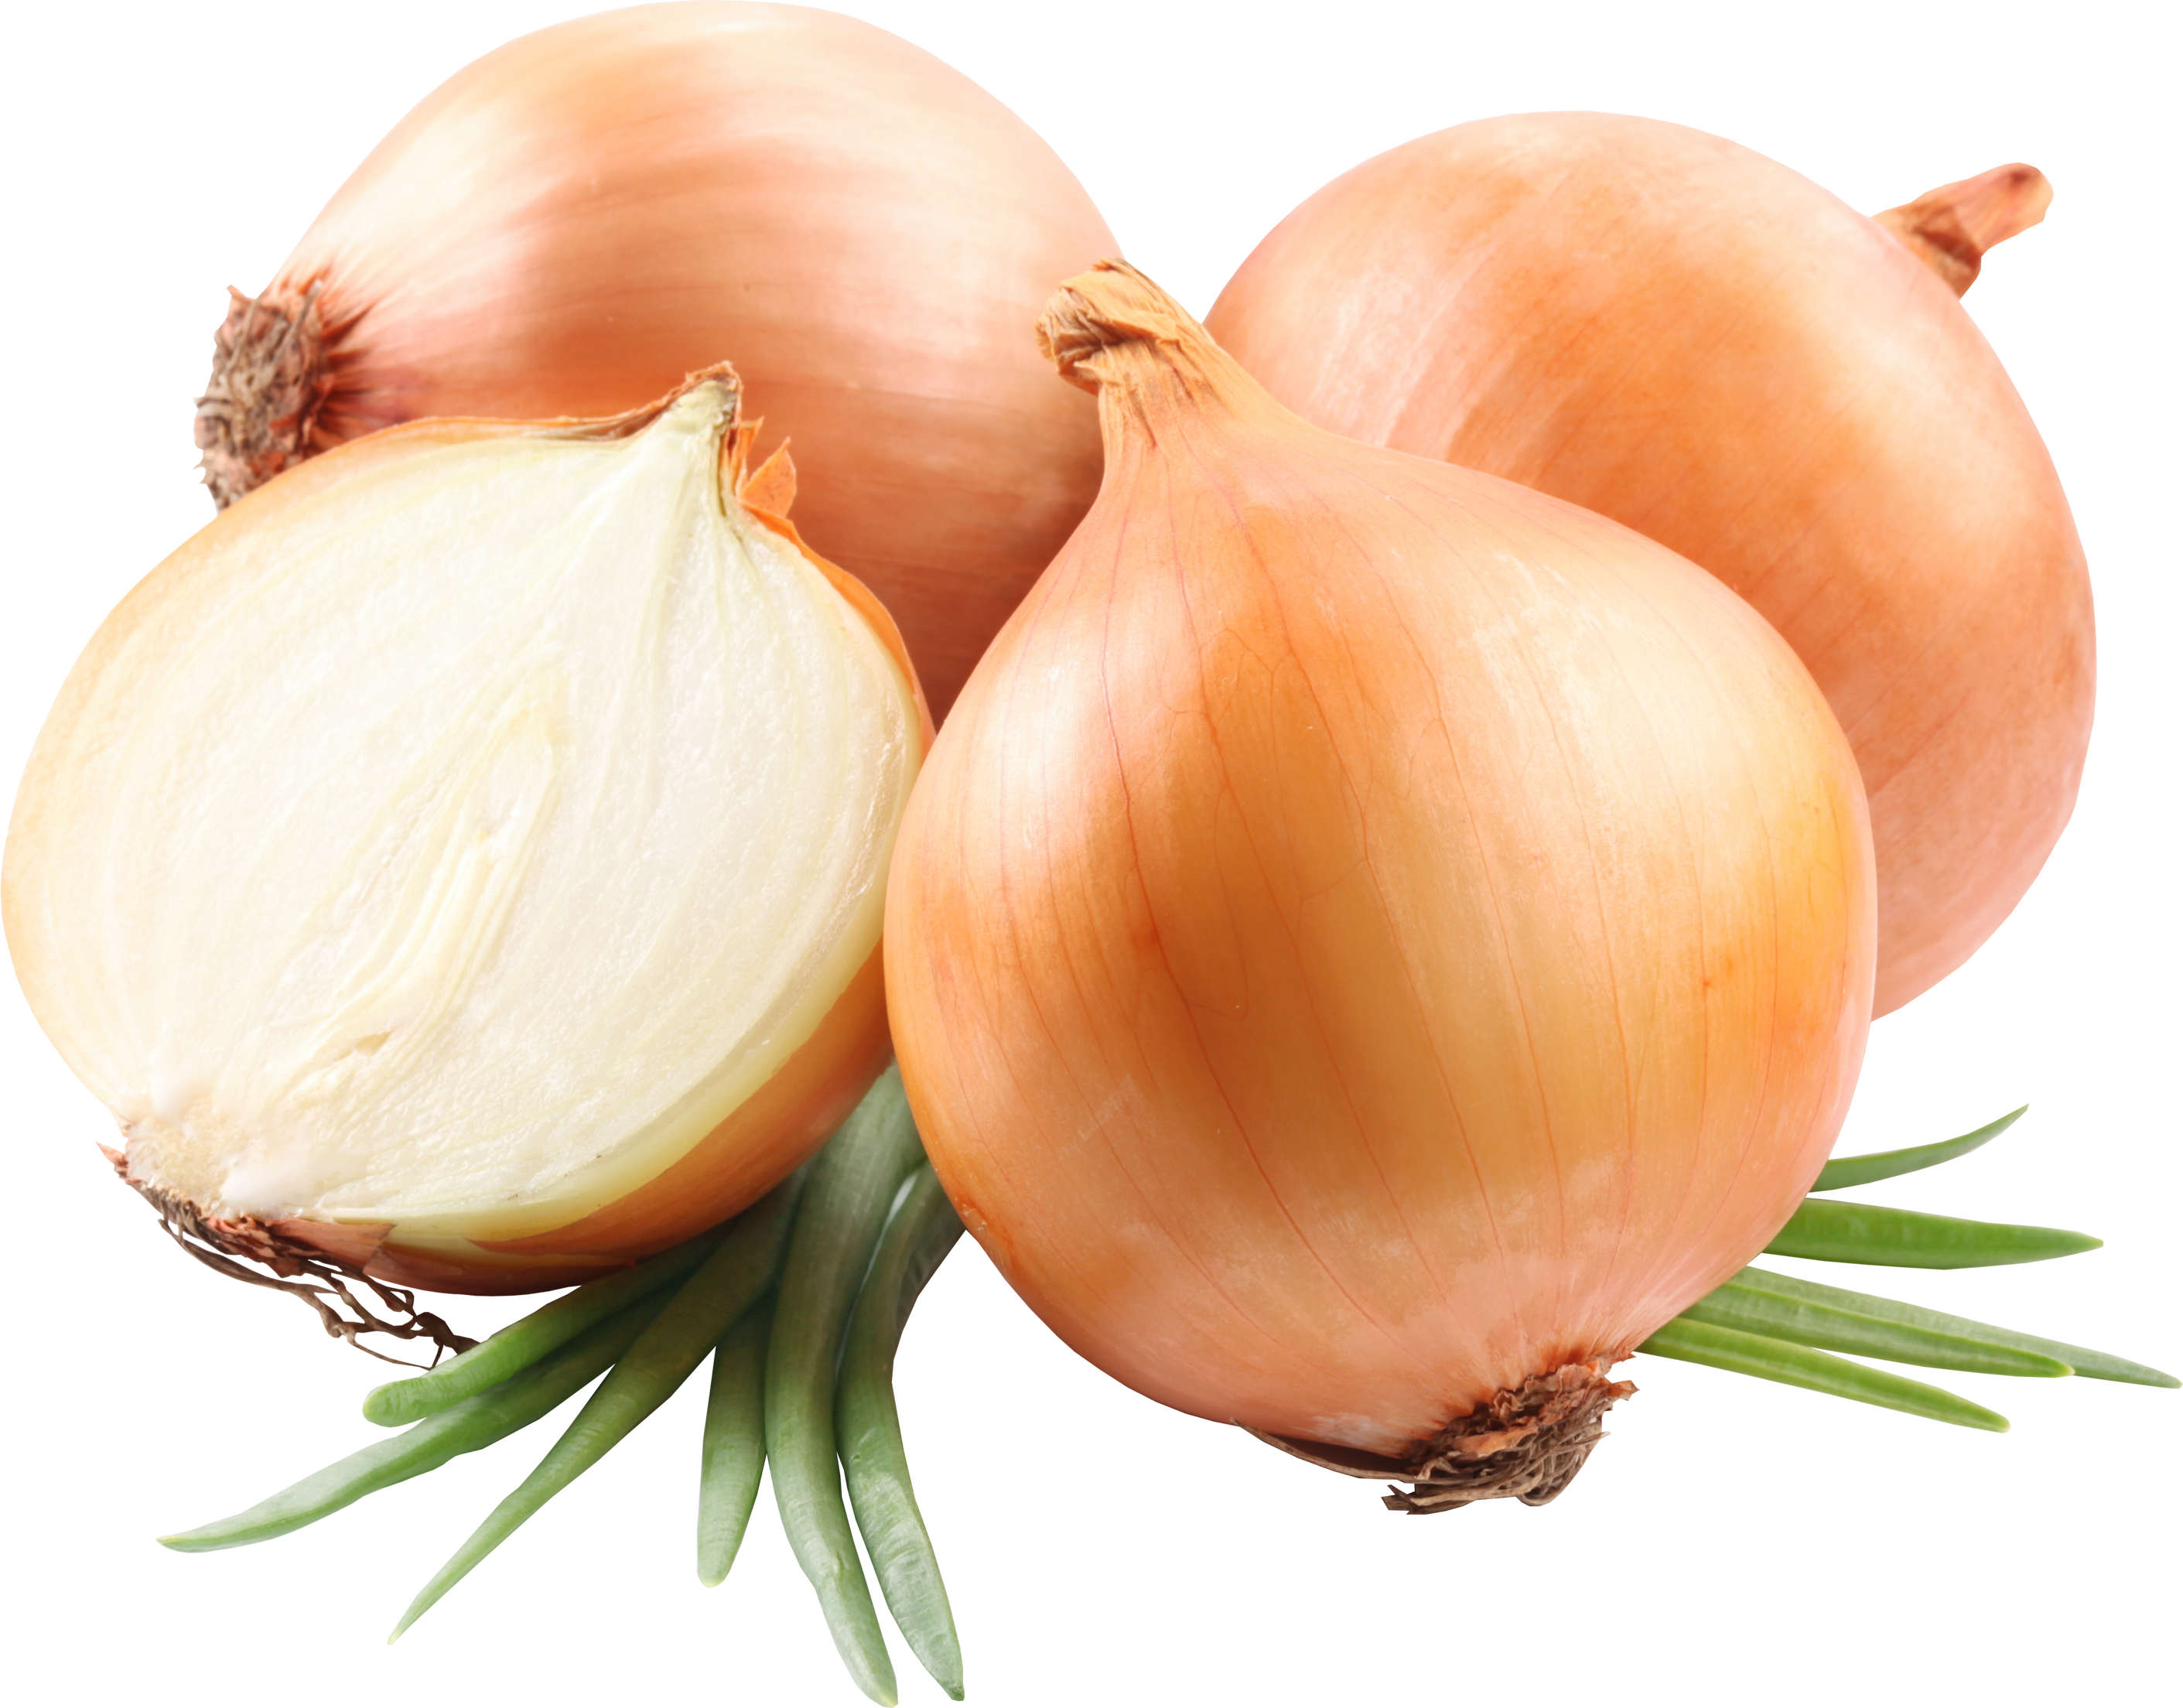 Fresh Onion Vegetable 238.14 Kb